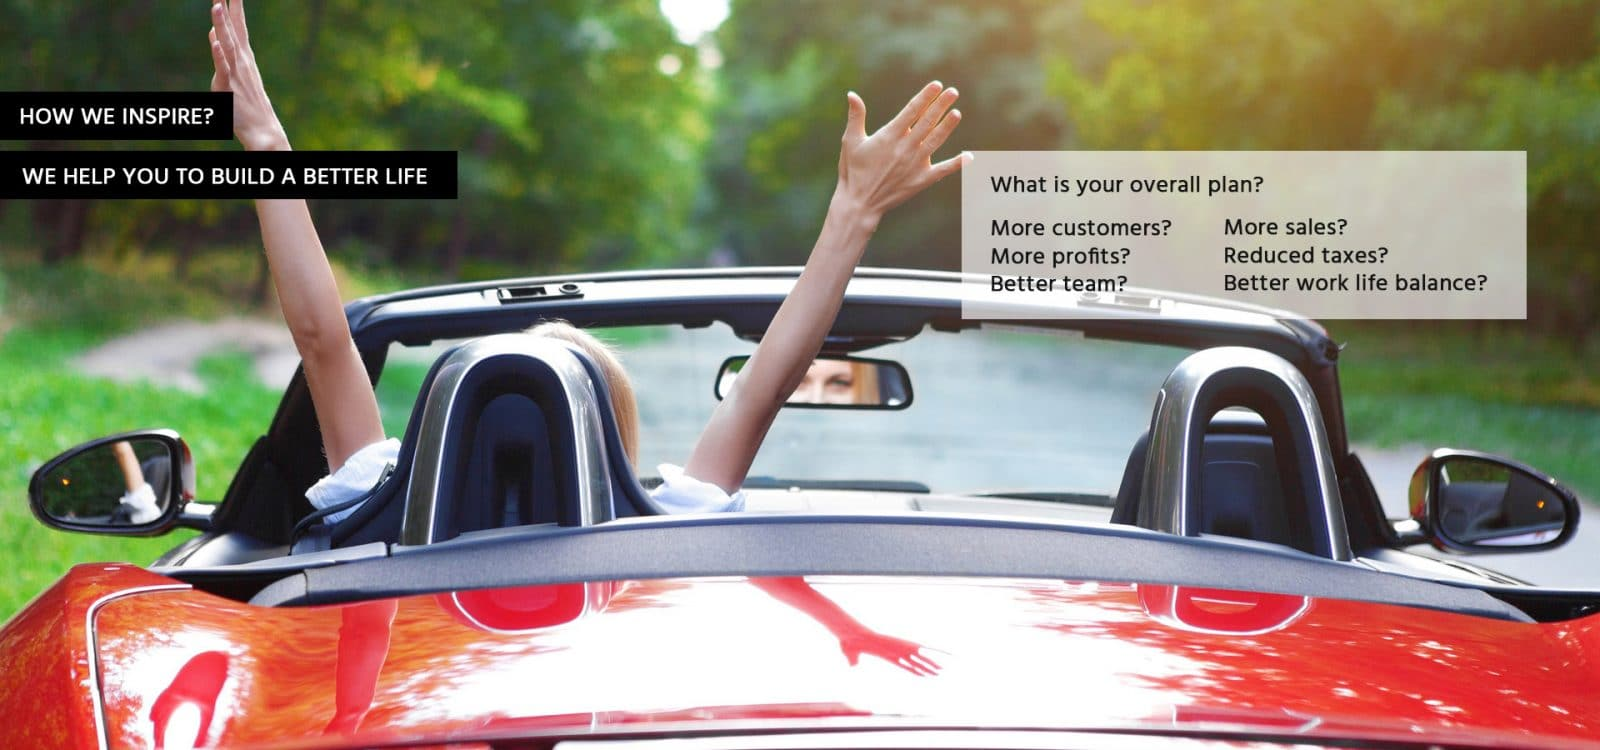 how-we-inspire Marketing Review - rear view of lady in red car with hands in the air